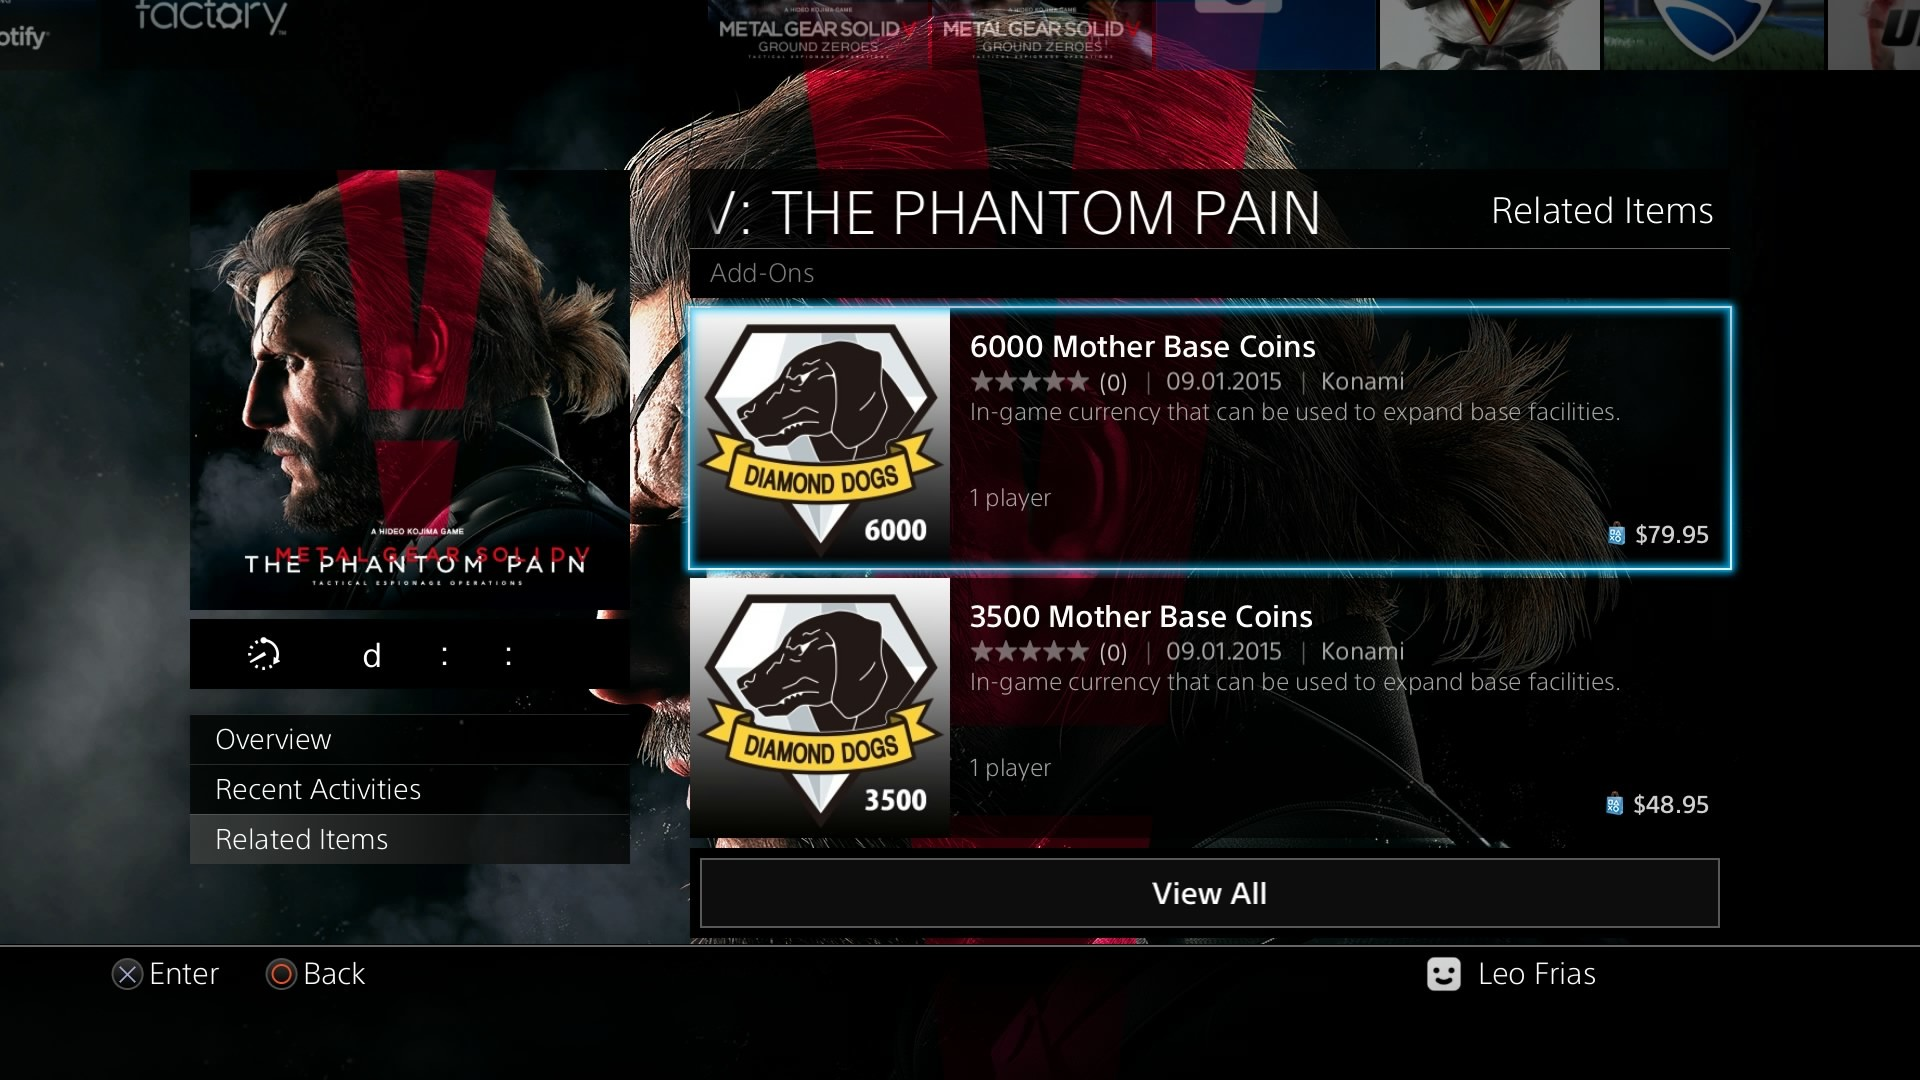 Metal Gear Solid V: The Phantom Pain's Microtransactions Explained  [Updated] – Xbox One, Xbox 360 News At XboxAchievements.com